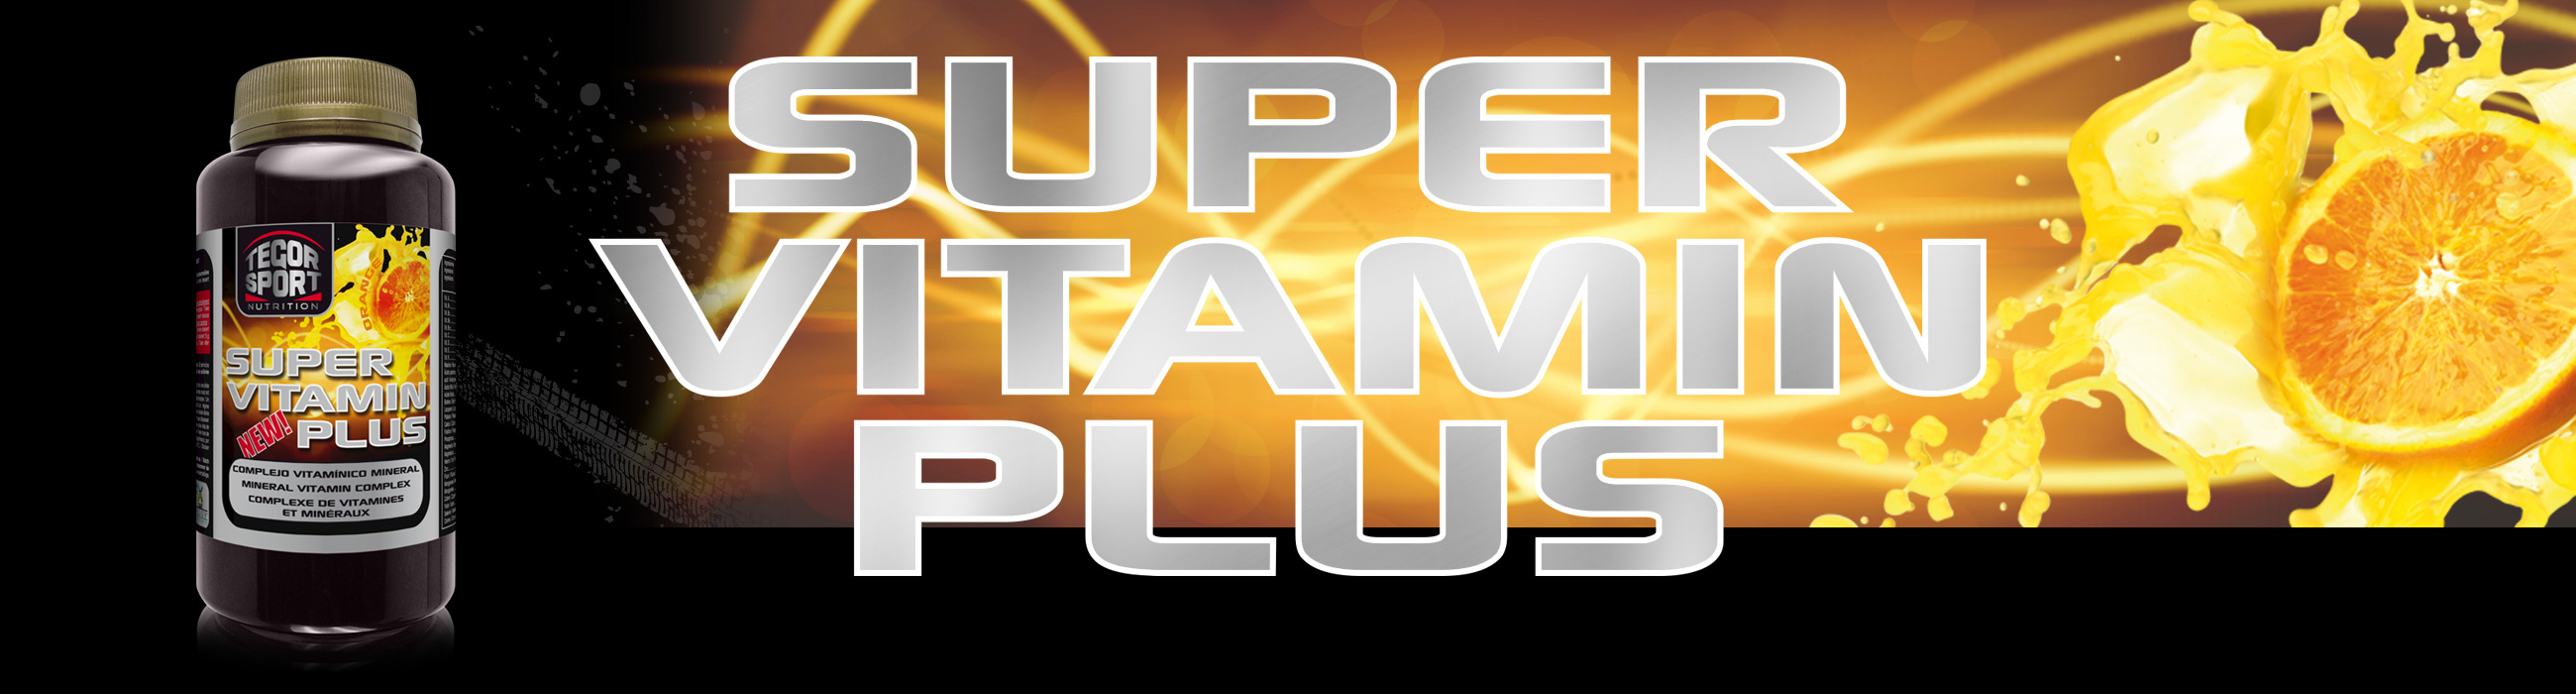 Bote super vitamin plus con naranja